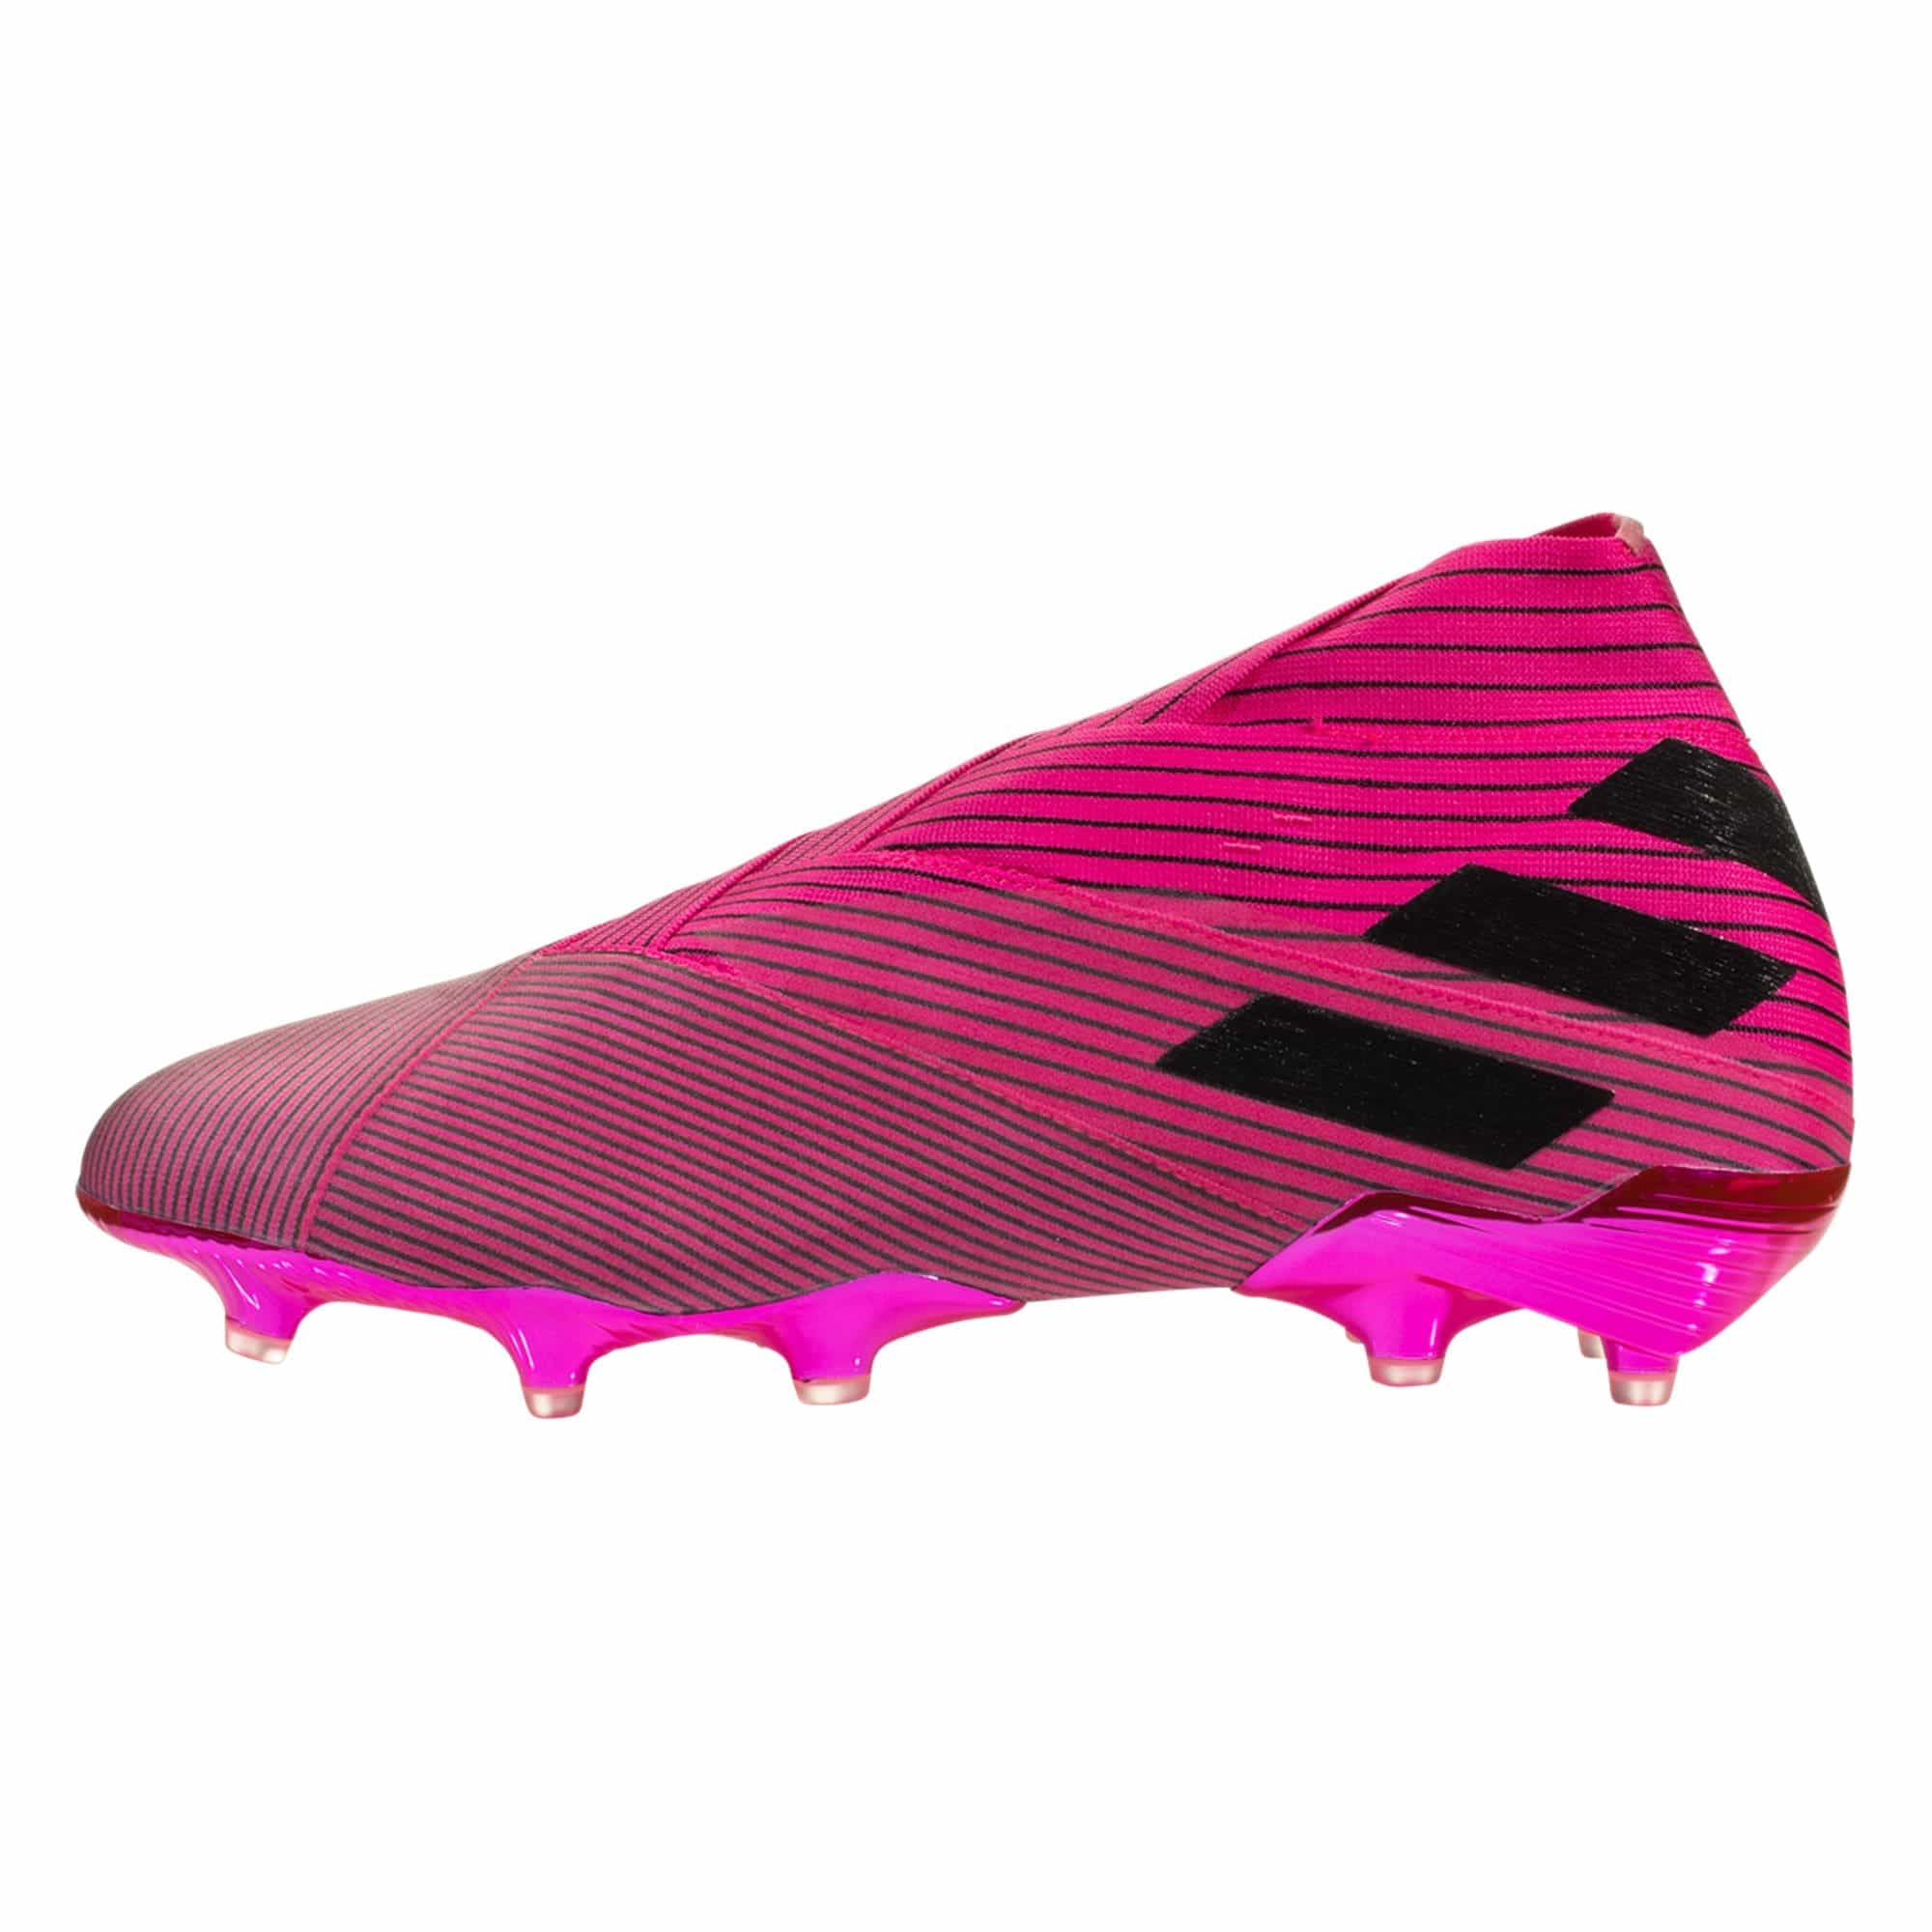 adidas Nemeziz 19+ FG Soccer Cleat - Shock Pink / White / Black